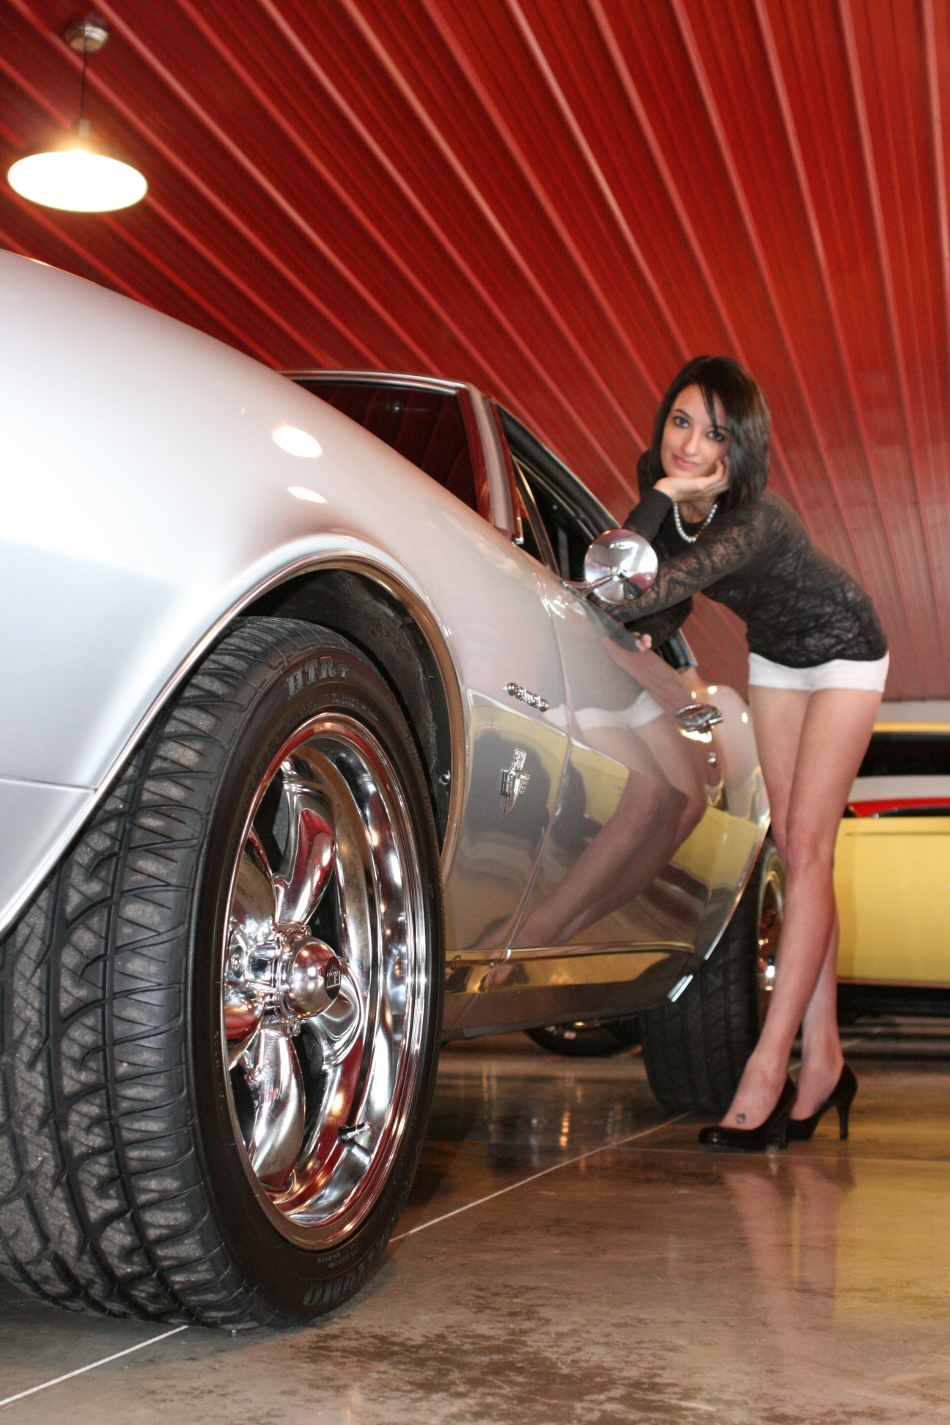 cars for sale, muscle cars